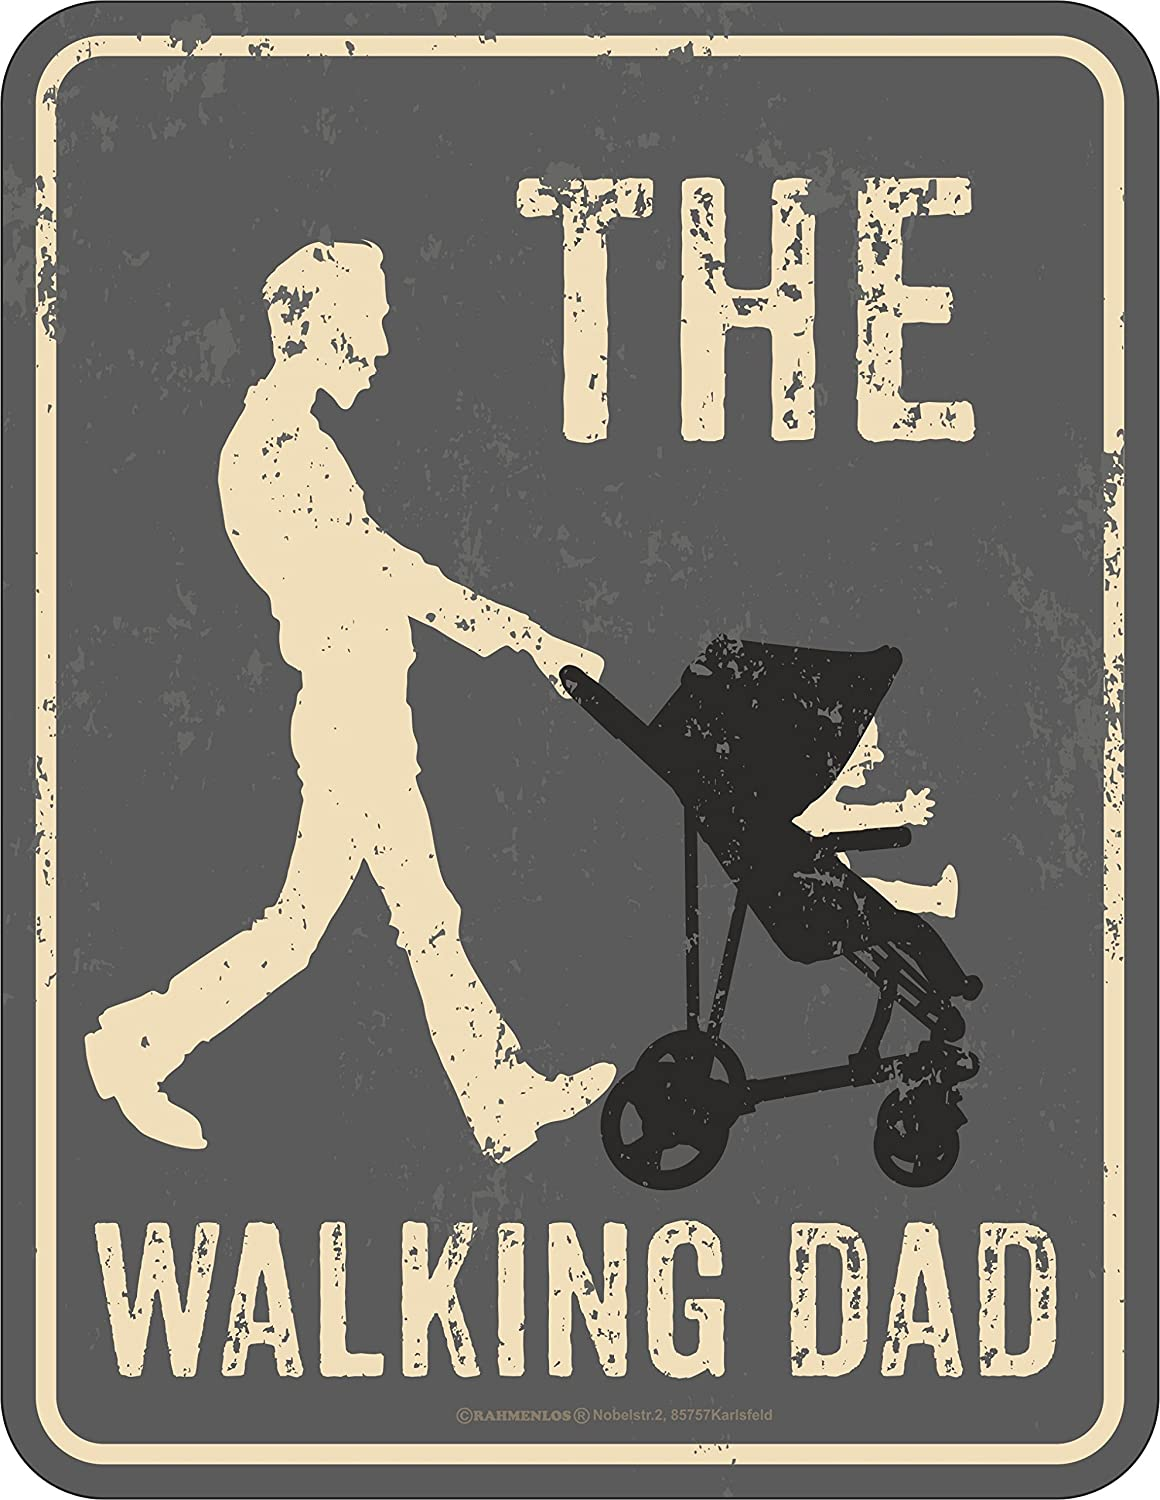 RAHMENLOS® tin plate sign for an active dad: The Walking Dad.